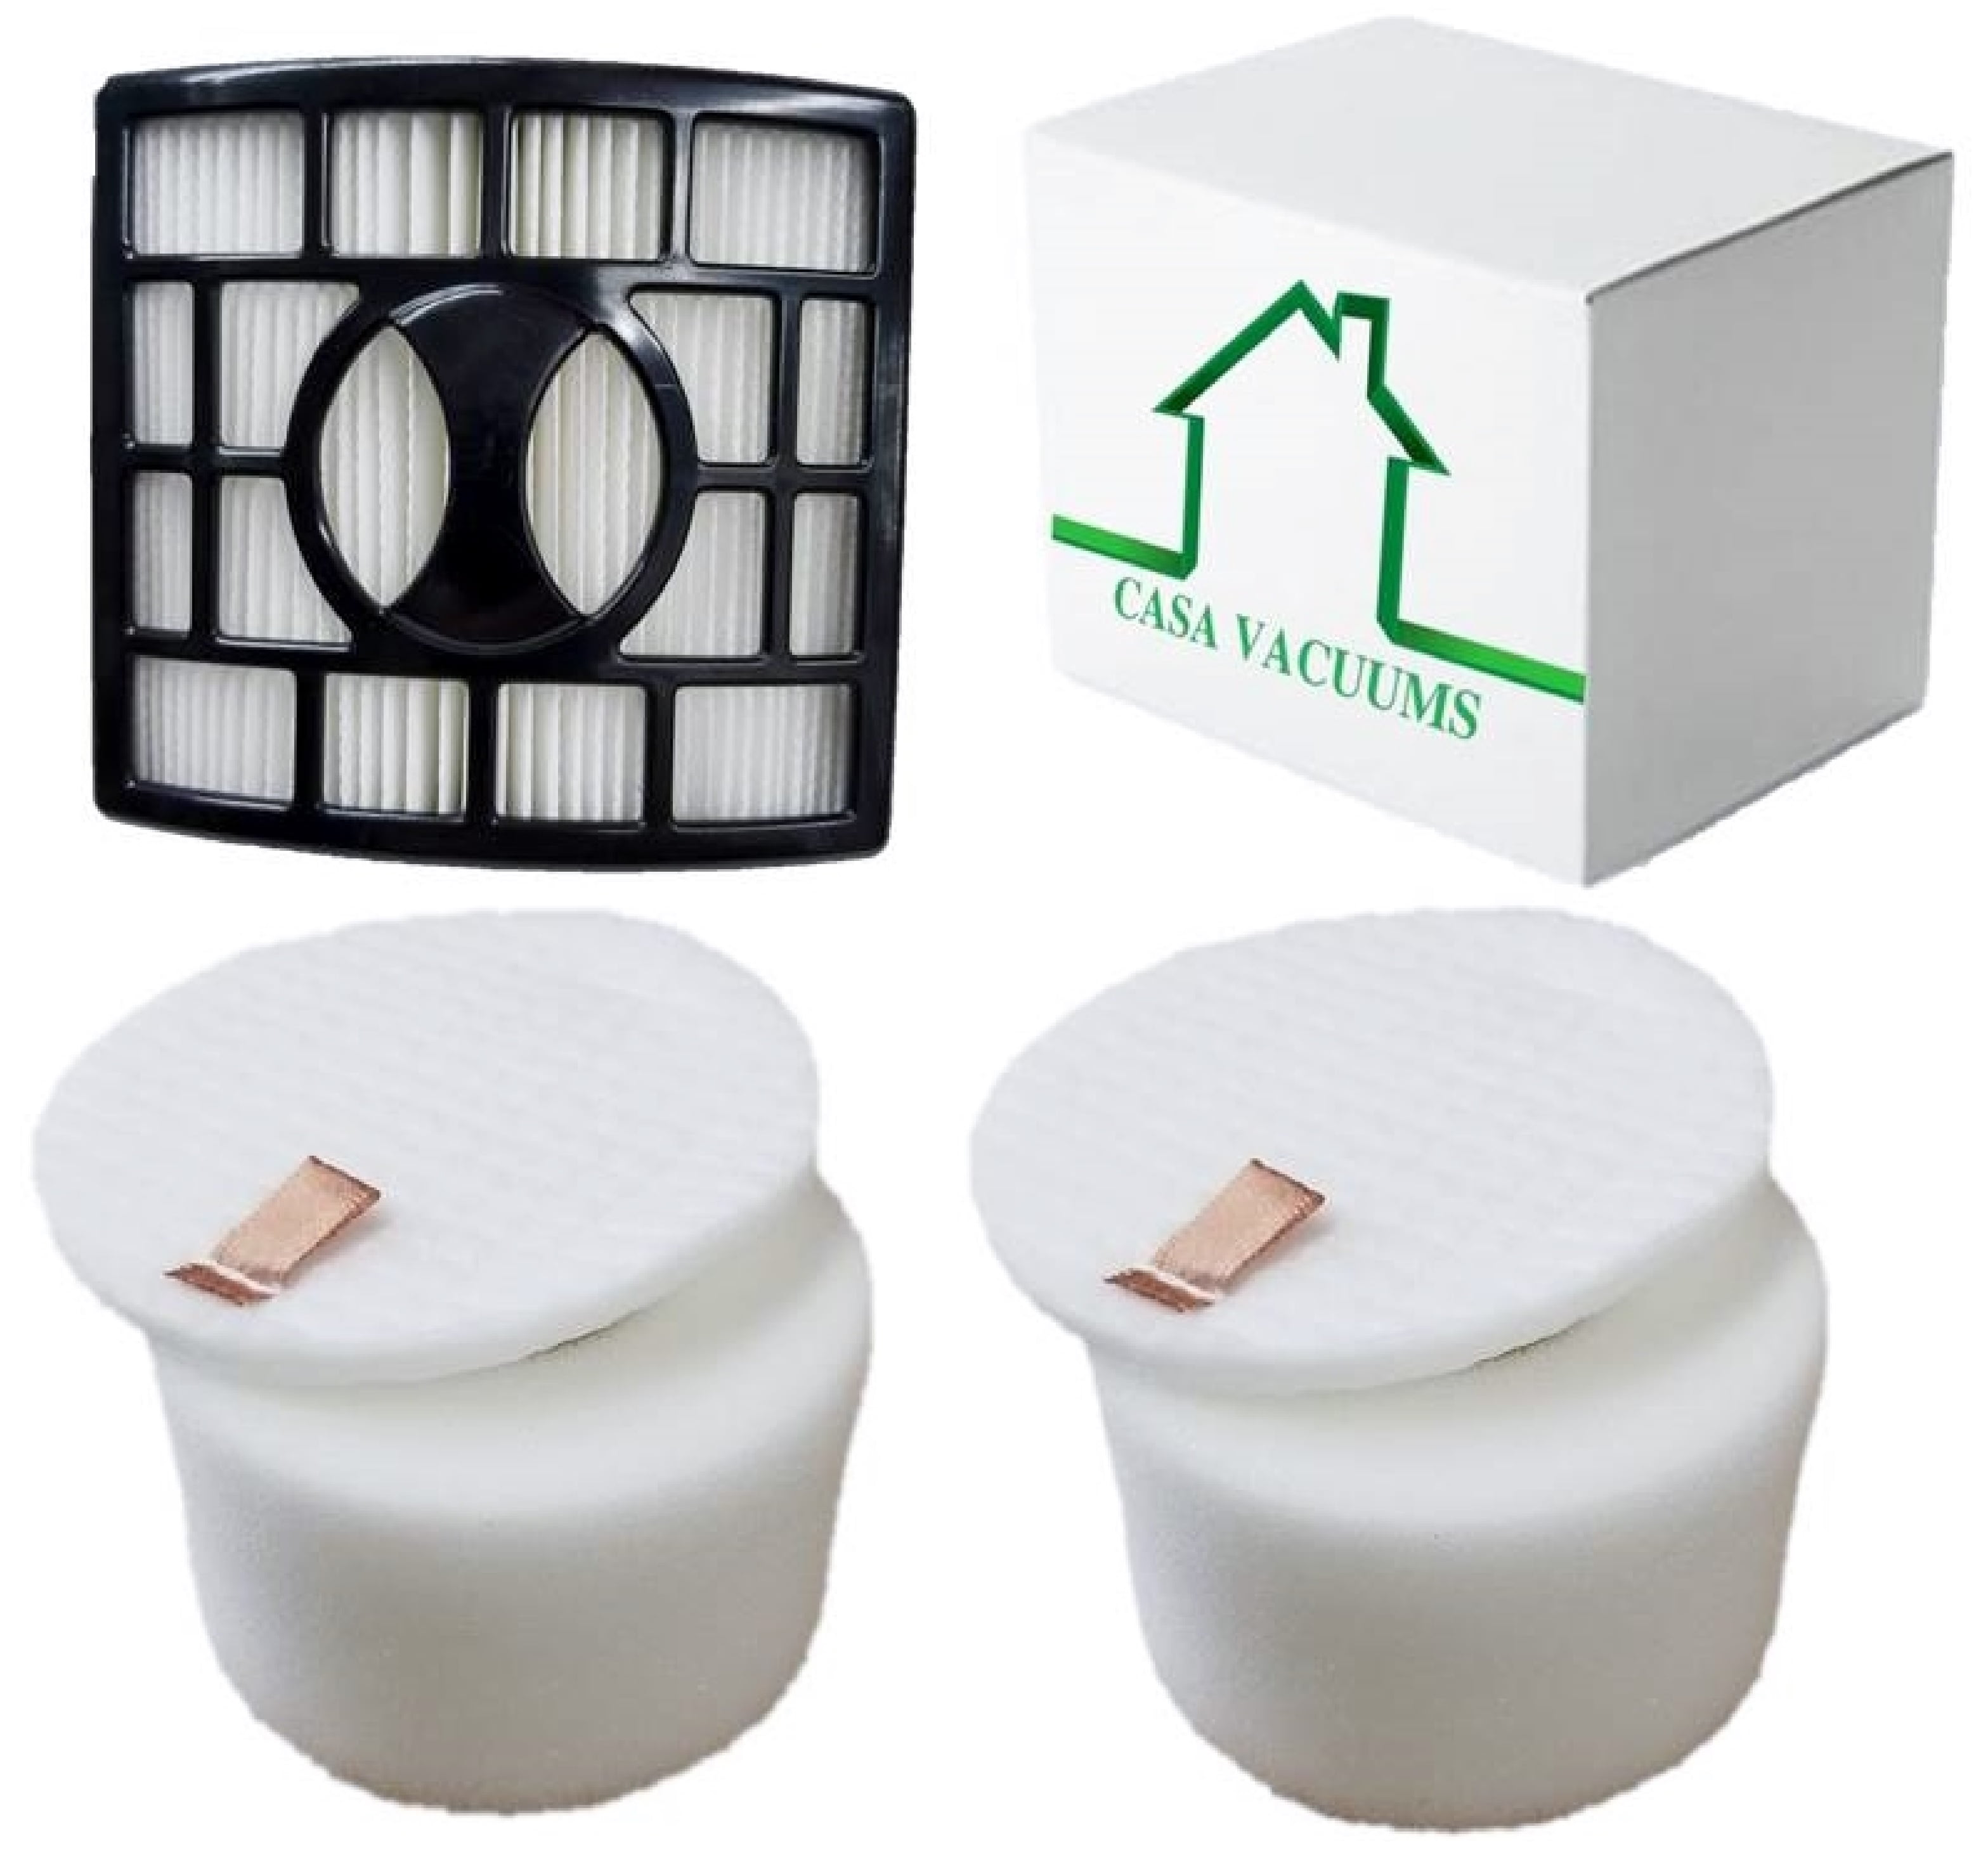 NV801 NV800 Part Numbers #XFF680 /& XHF680 NV682 Foam and Hepa Filter,Replacement Filter Set for Rotator Duo Clean Powered Lift Away Speed Vacuum NV680 NV803 UV810 NV681 NV683